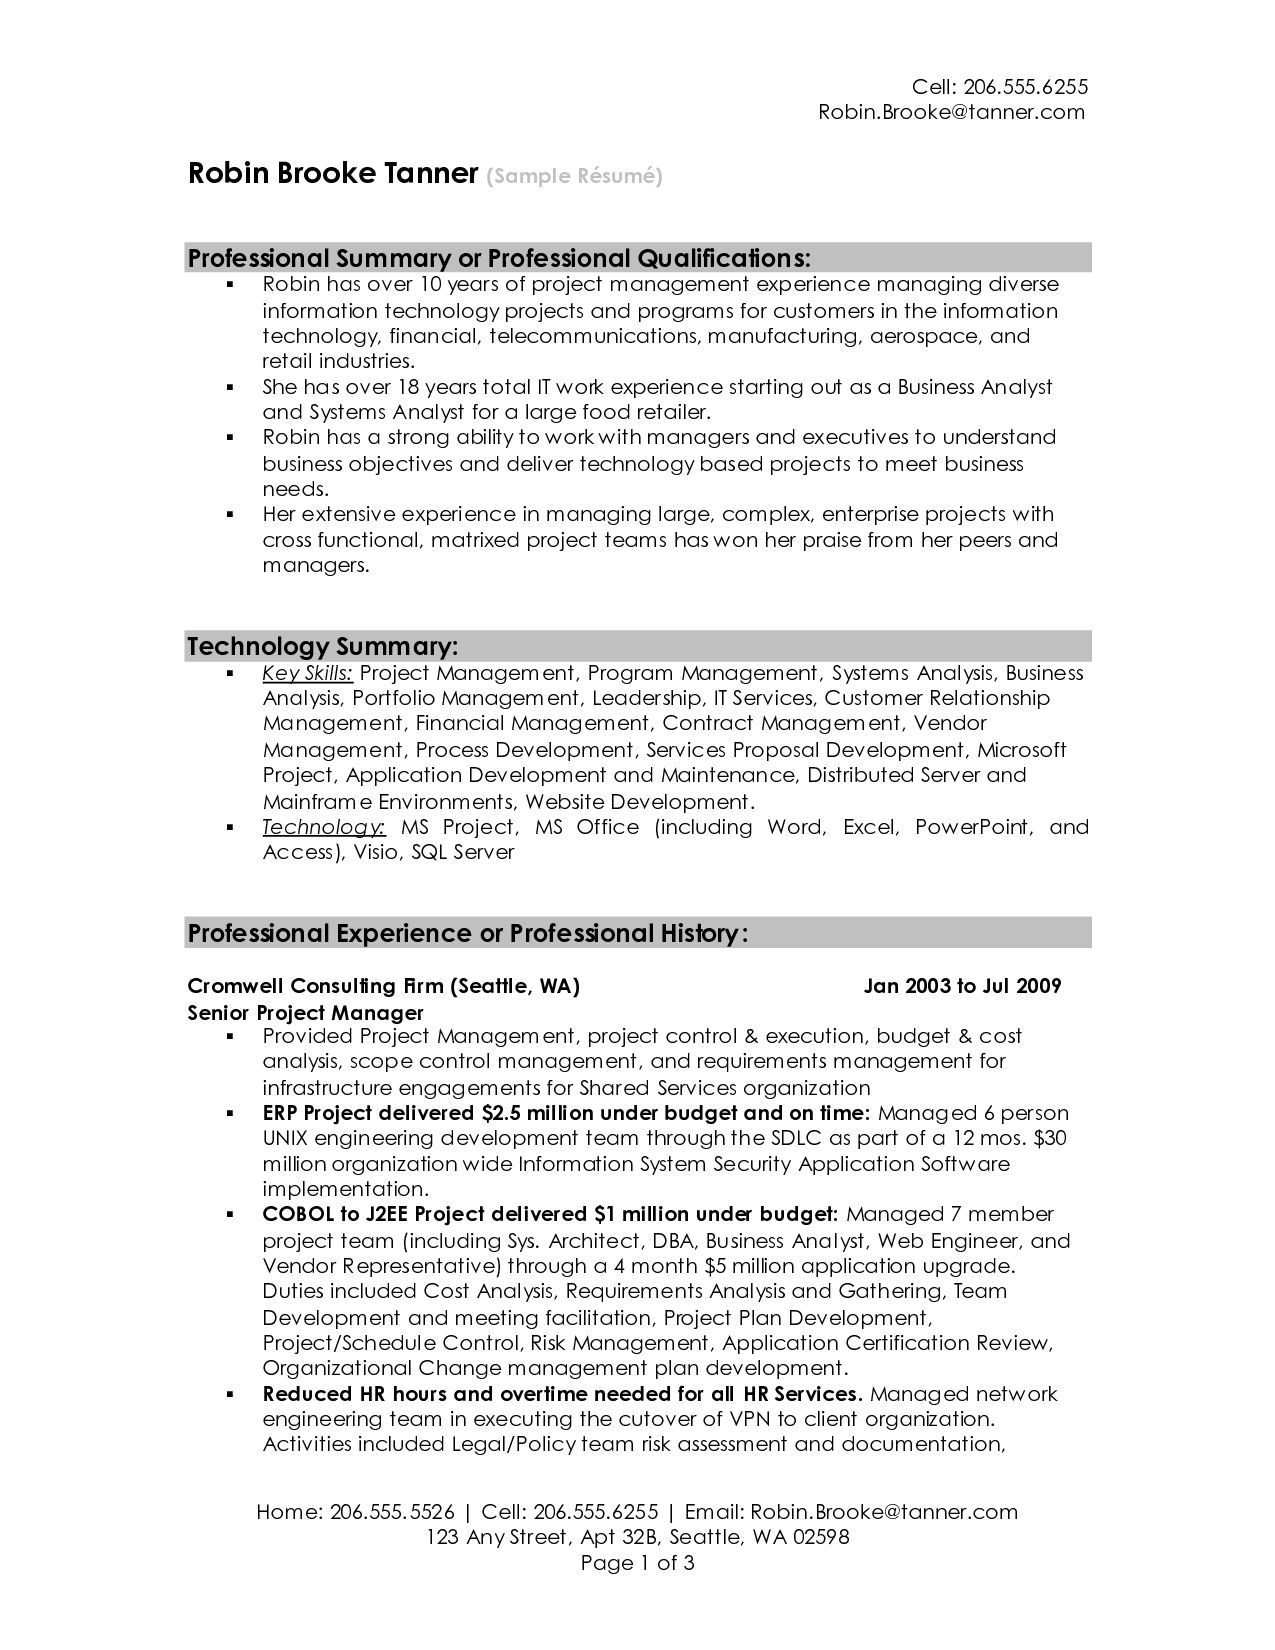 Resume Professional Summary Examples Magnificent Professional Summary Resume Sample For Statement Examples Writing